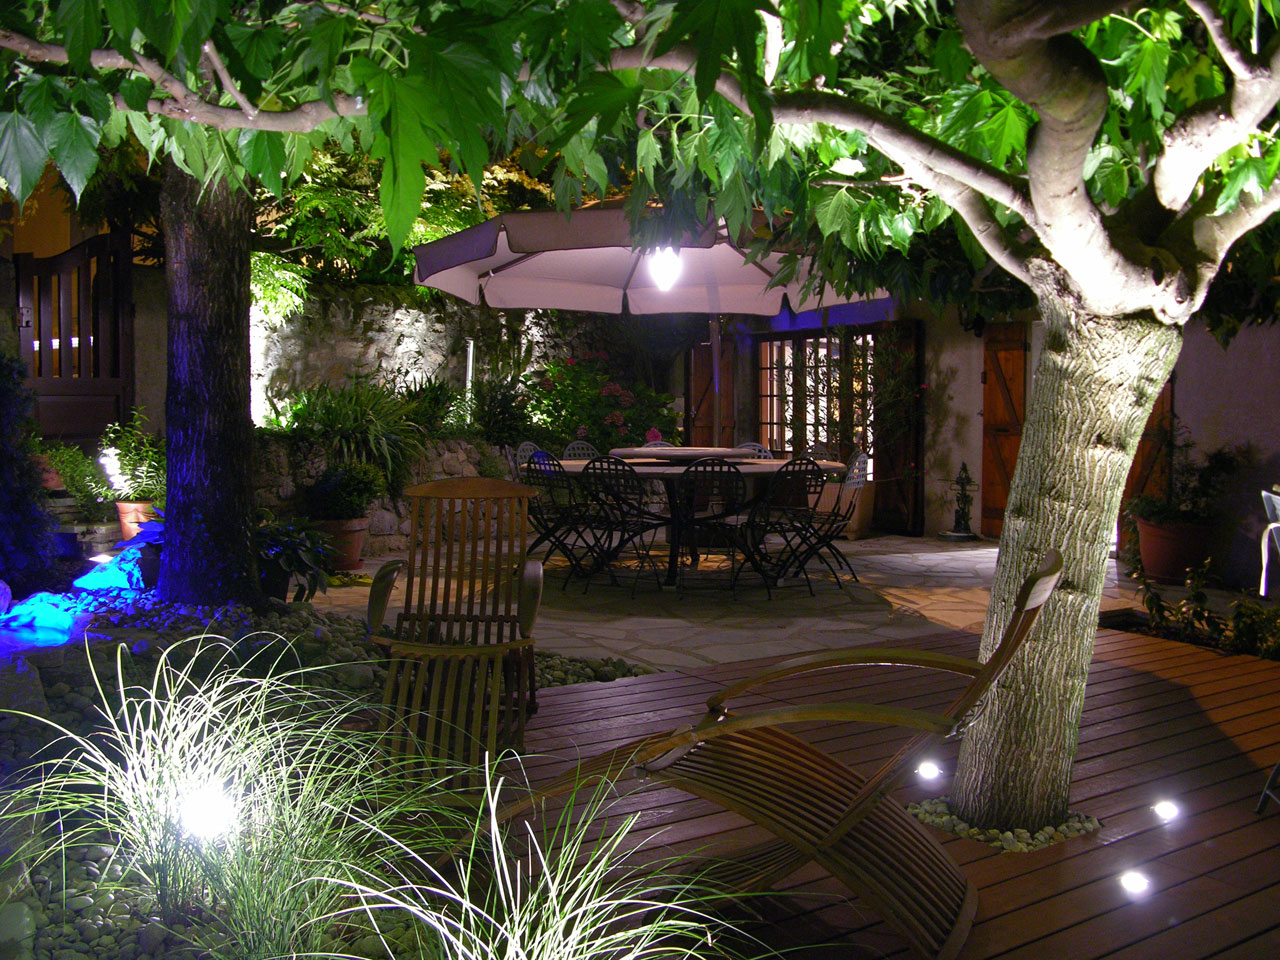 fabulous cool eclairage de jardin brignoles with eclairage terrasse bois led with spot led terrasse bois